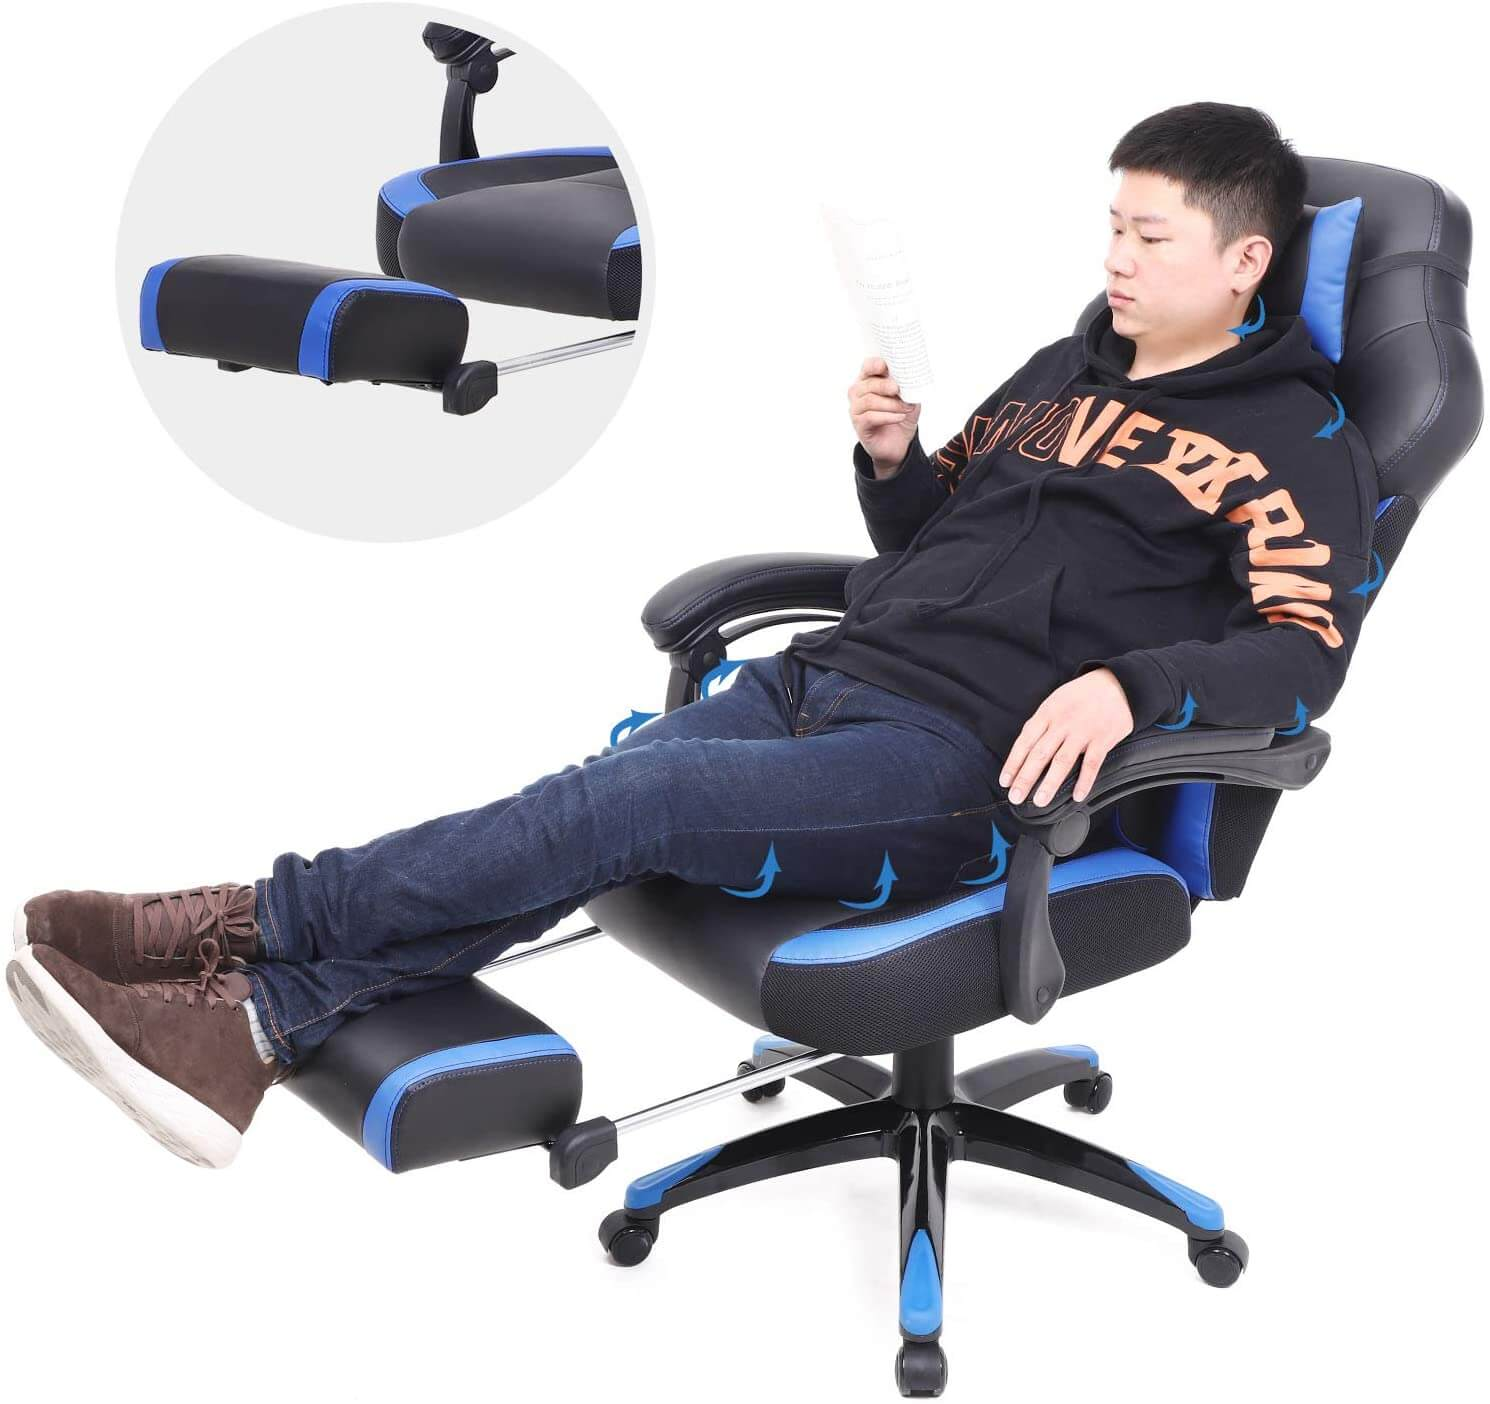 SONGMICS gaming chair with footrest and lumbar support